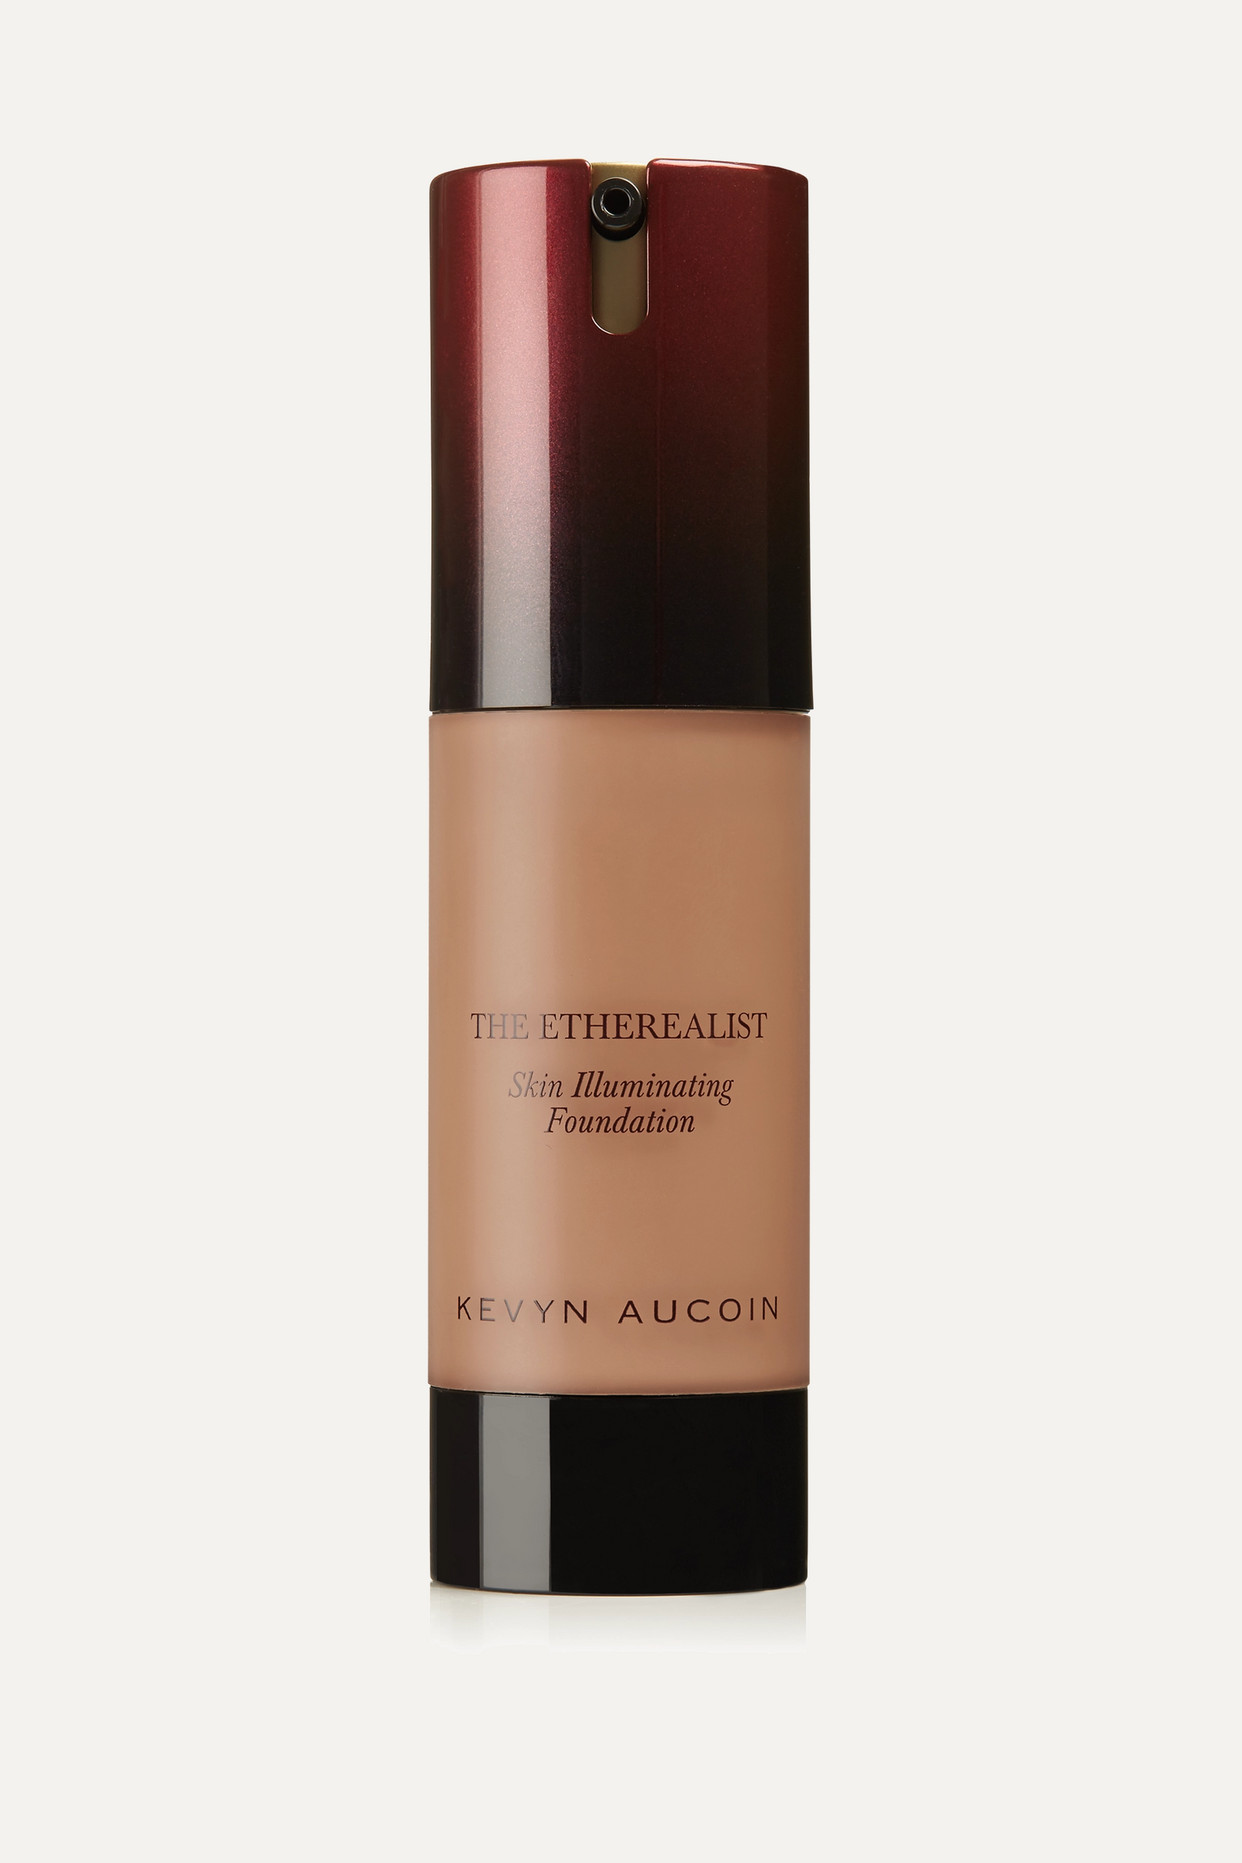 KEVYN AUCOIN - The Etherealist Skin Illuminating Foundation - Medium Ef 10, 28ml - Brown - one size